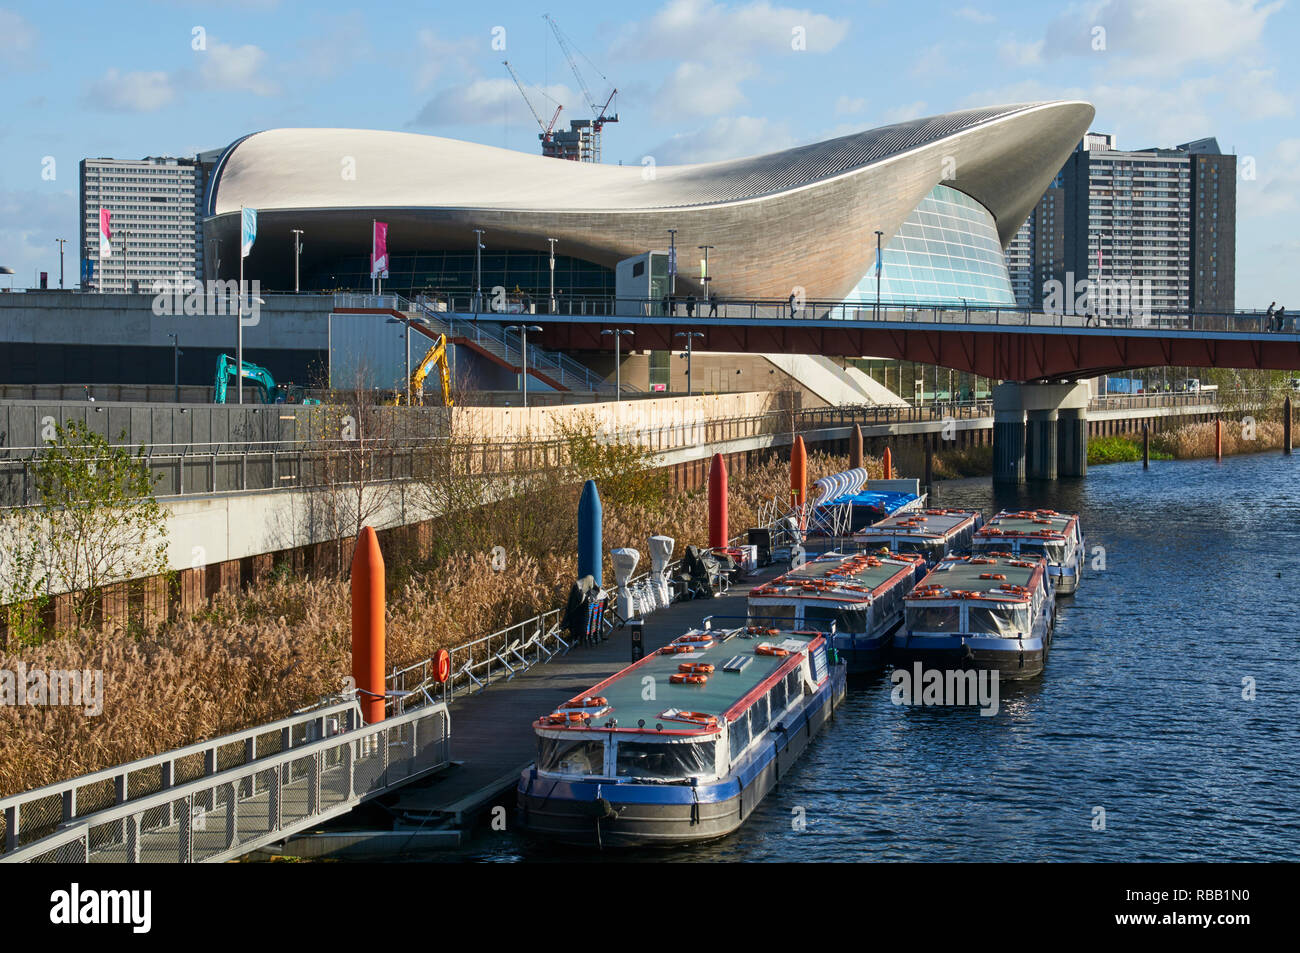 The London Aquatics Centre at Stratford, East London,  UK, with boats on the Waterworks River - Stock Image